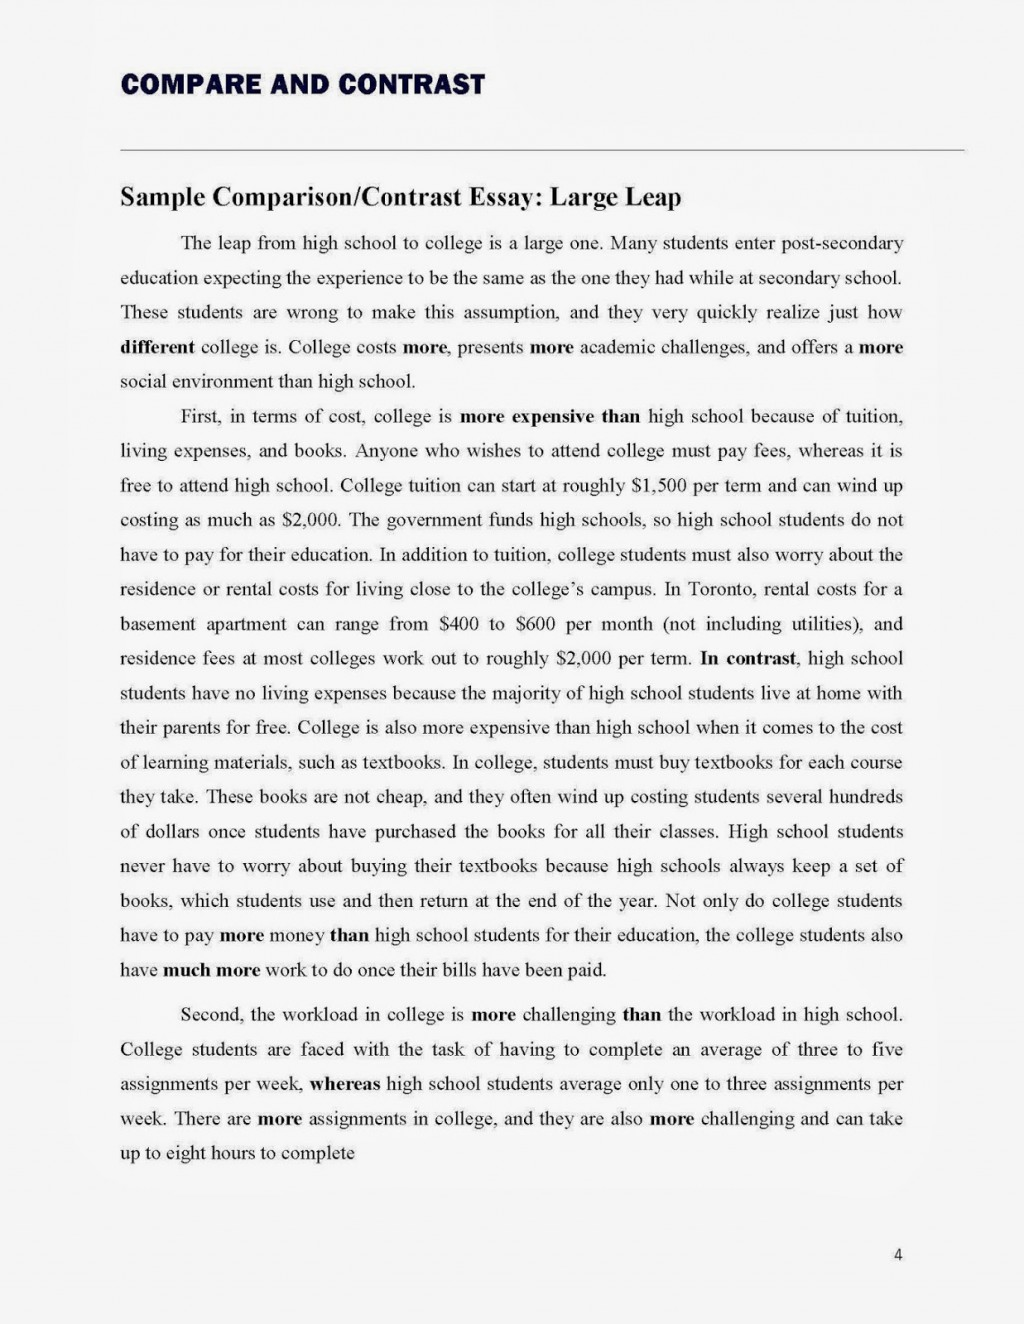 026 Evaluation Essay Topics Compare2band2bcontrast2bessay Page 4 Awful Questions With Criteria Large